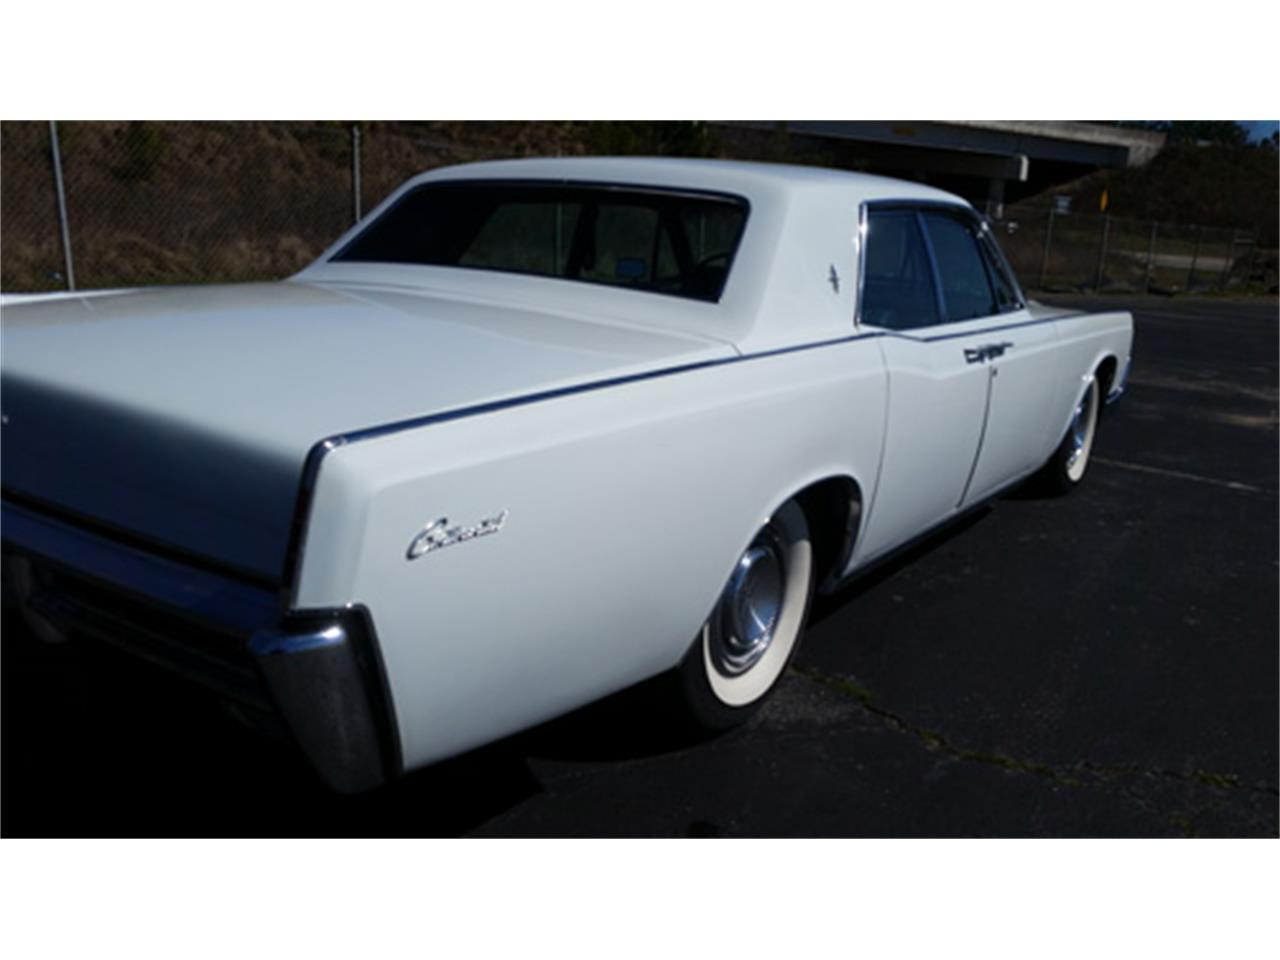 Large Picture of '67 Lincoln Continental - $15,988.00 Offered by Dream Cars of the Carolinas - PMJL